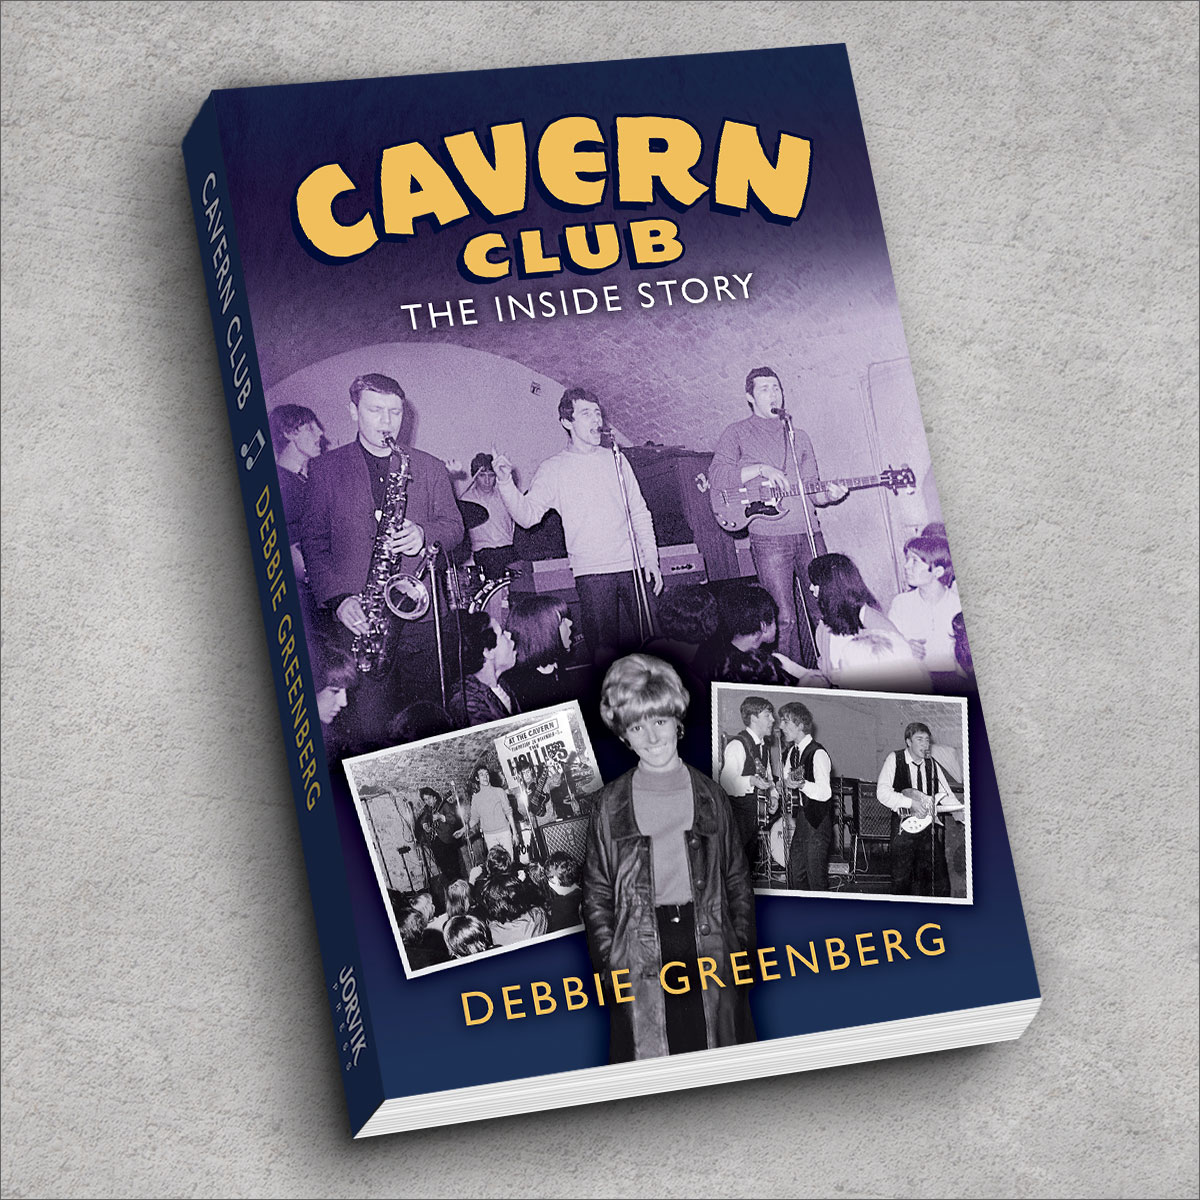 Cavern Club - The Inside Story